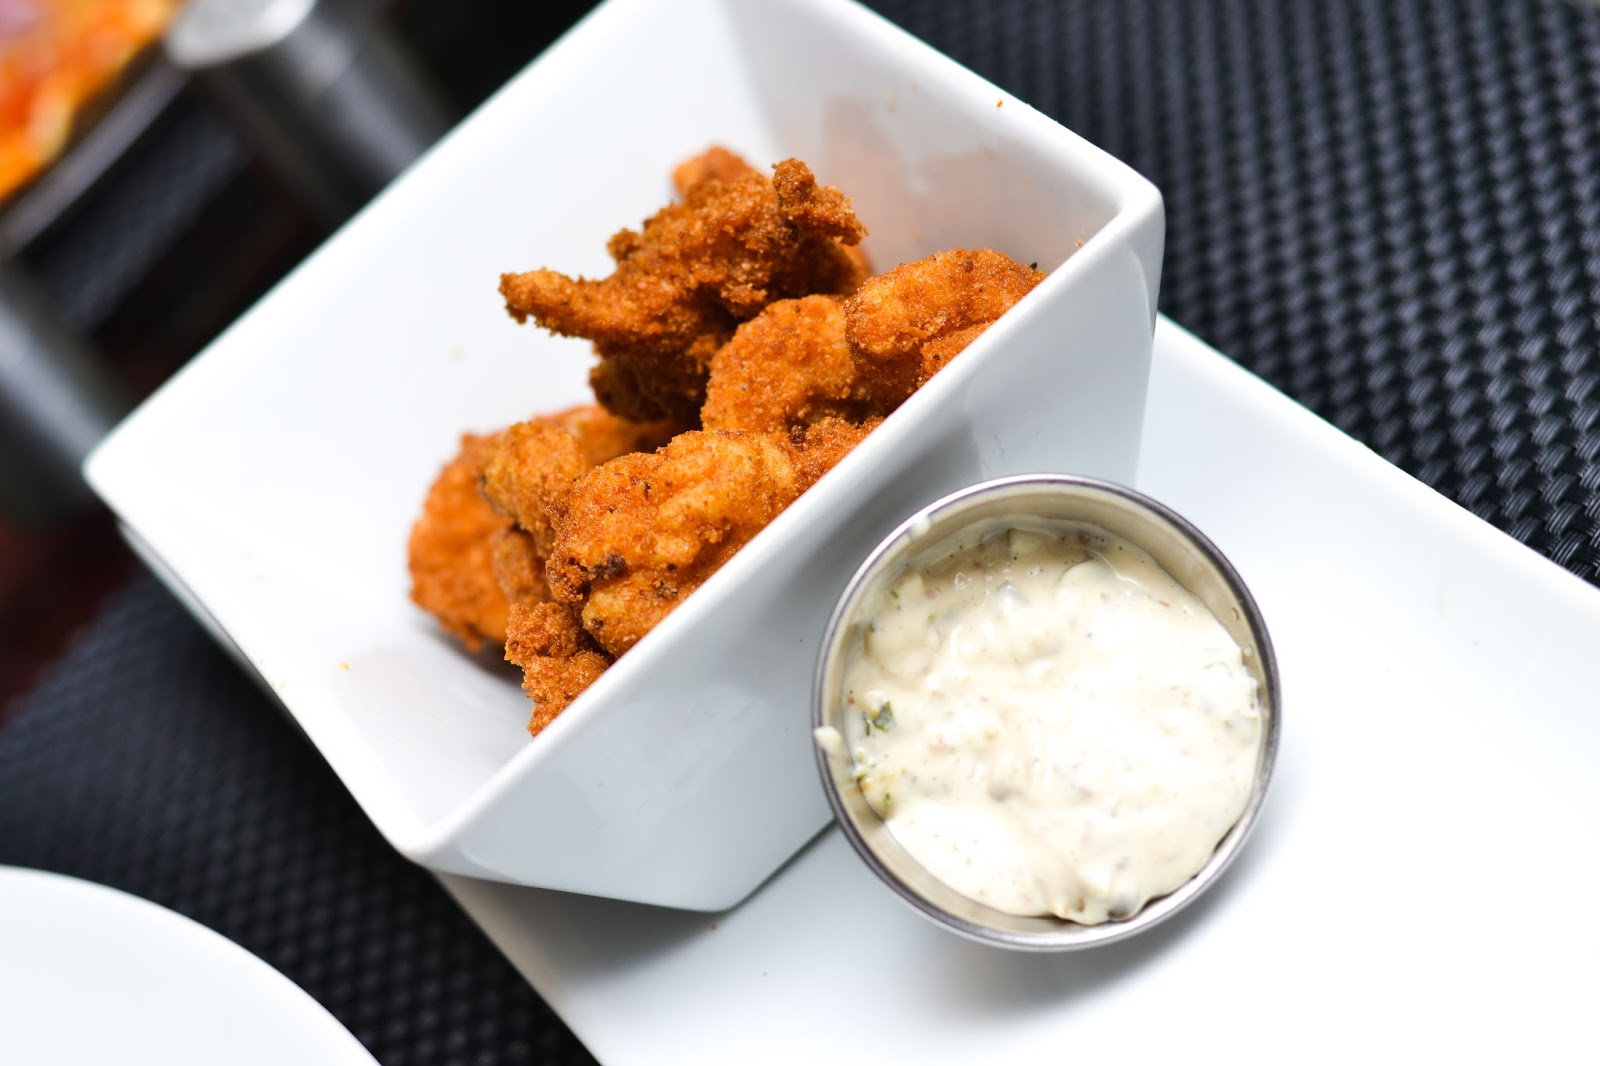 Popcorn Shrimp and Tartar Sauce in Nigeria